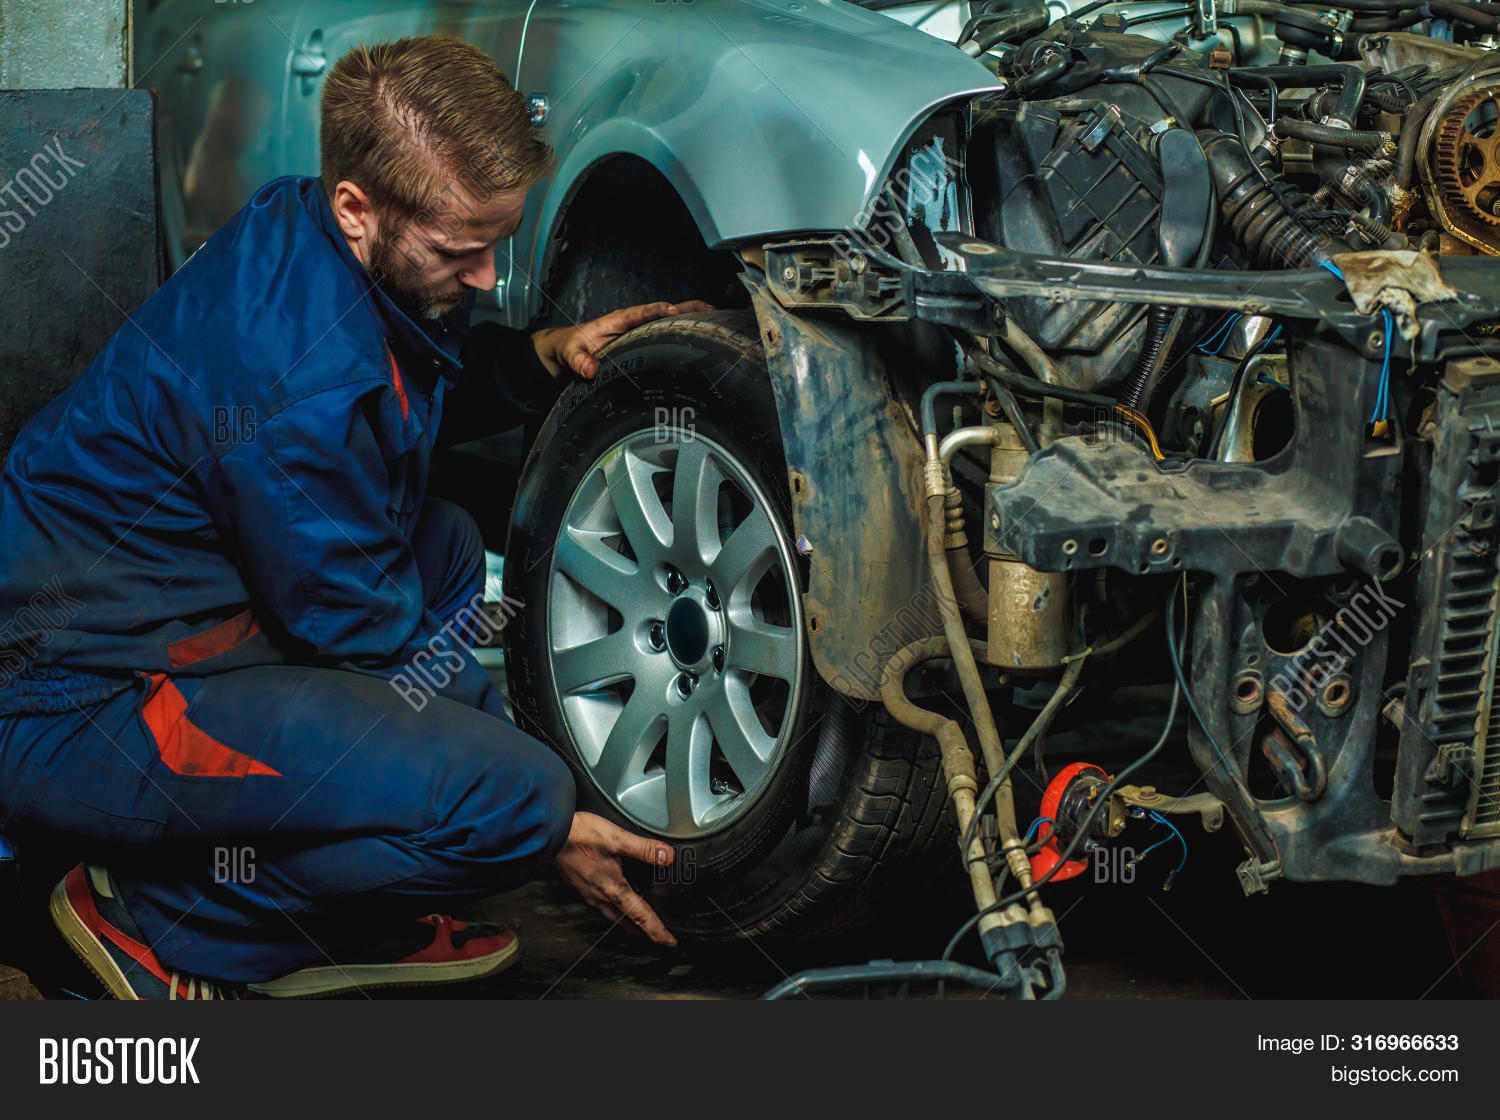 adult,auto,automobile,automotive,background,car,caucasian,change,changing,equipment,fixing,full,garage,holding,maintenance,male,man,mechanic,one,people,person,portrait,repair,rubber,service,shop,technician,tire,tool,transport,transportation,tyre,vehicle,wheel,work,worker,workshop,young